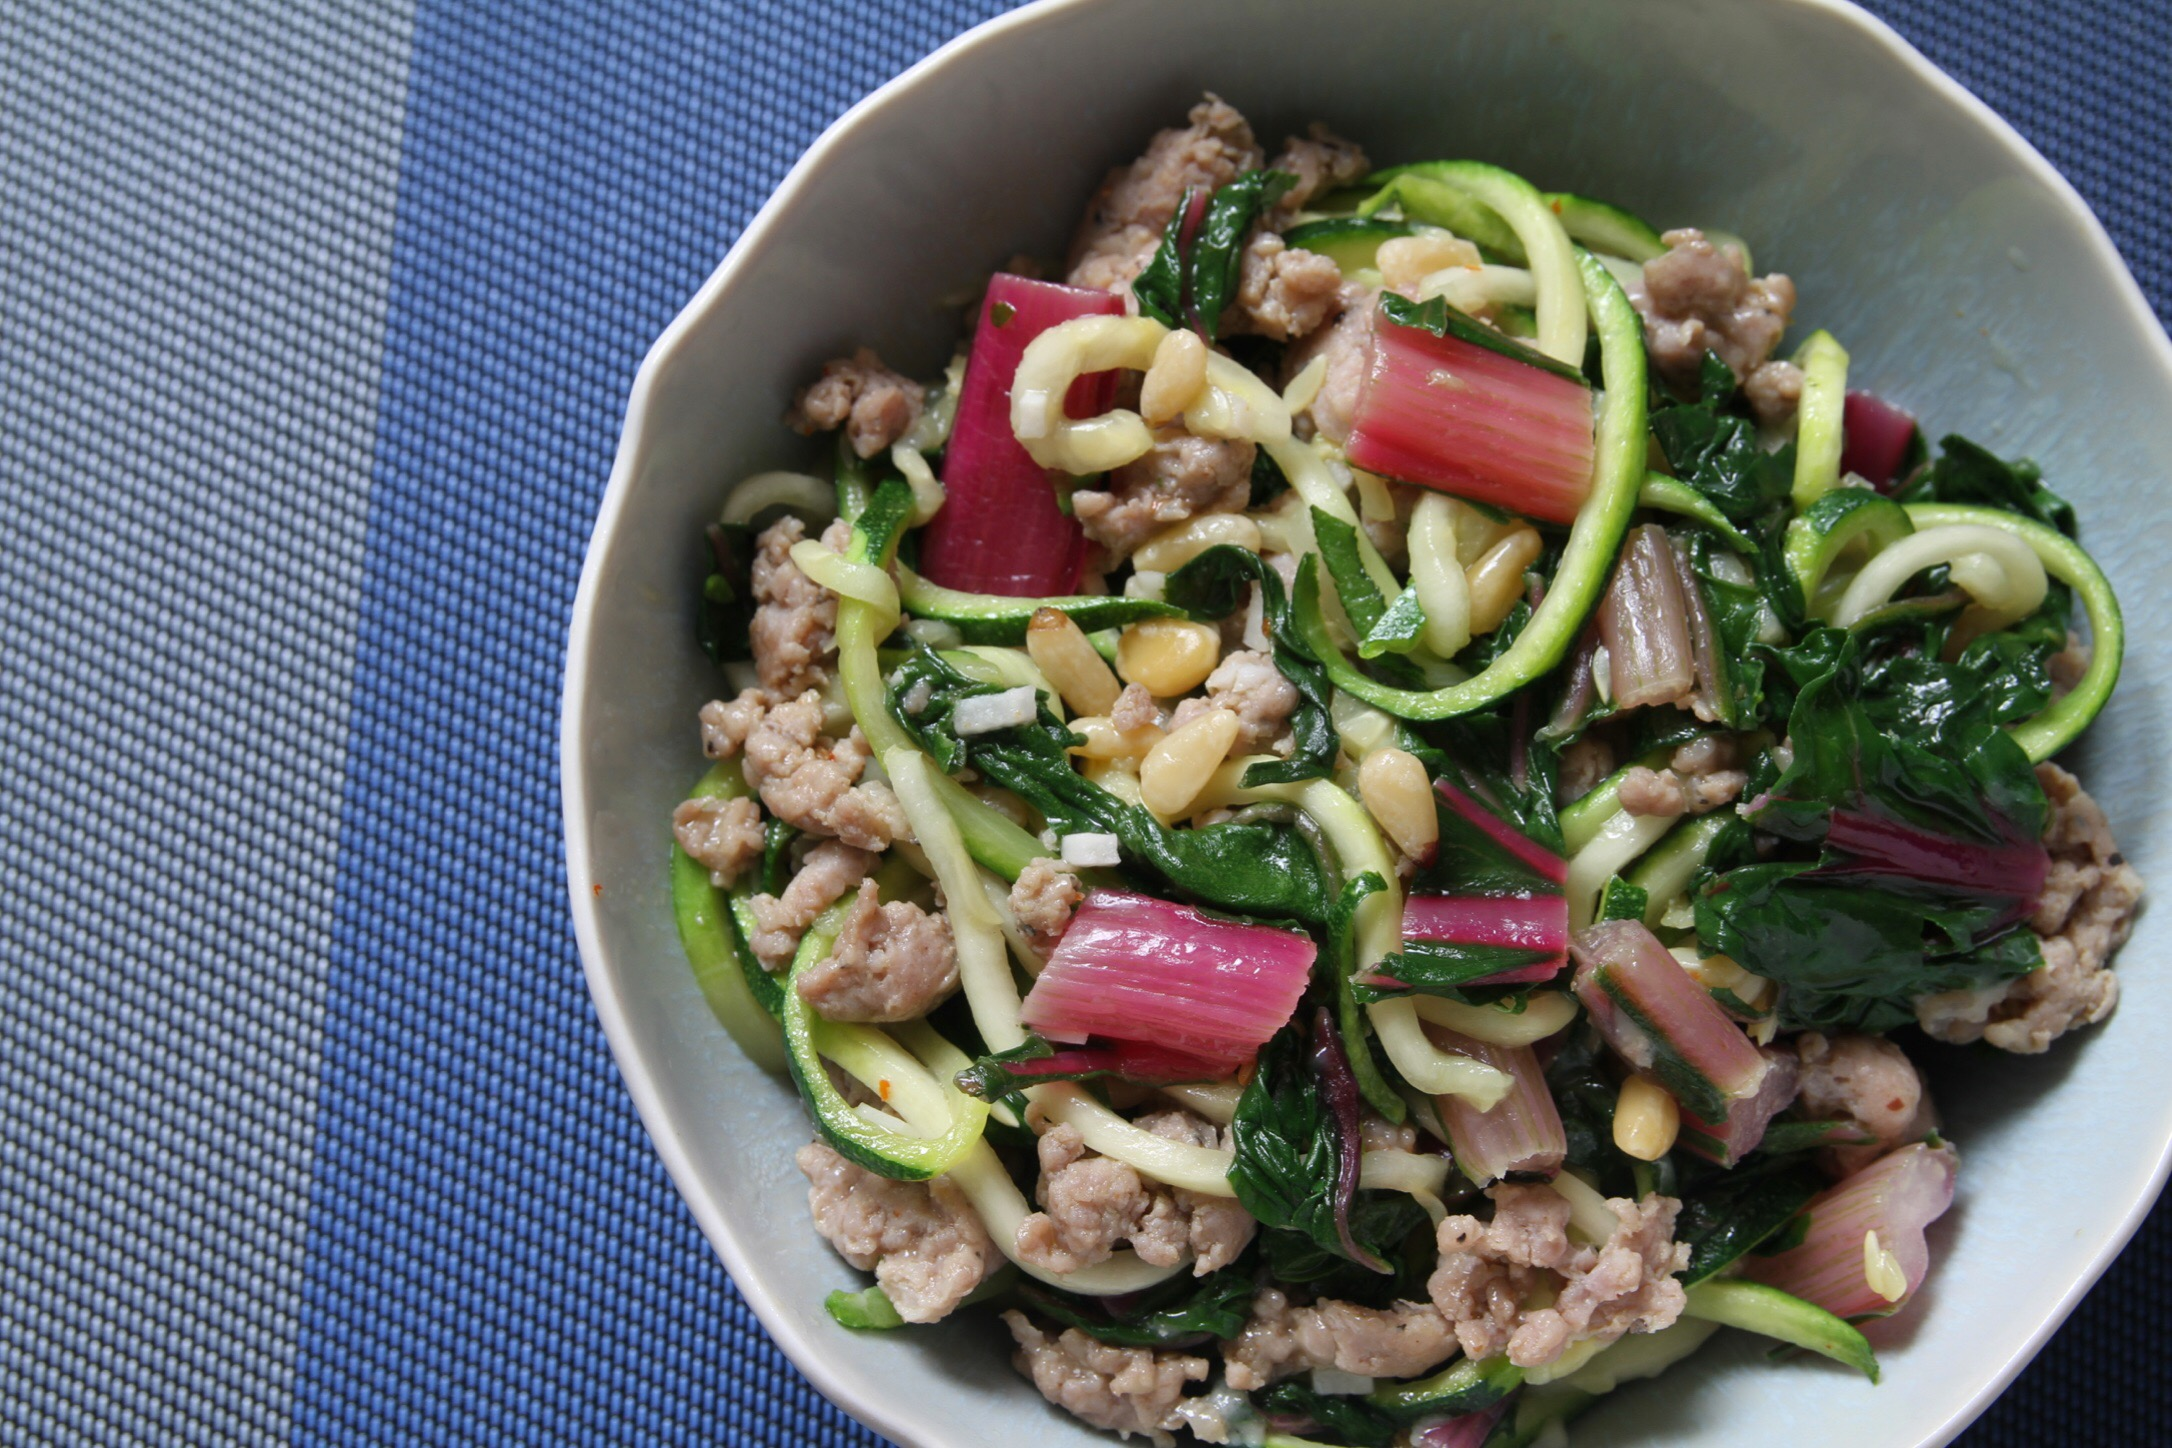 Zucchini noodles with sweet Italian sausage, chard, and pine nuts. And Parmesan!